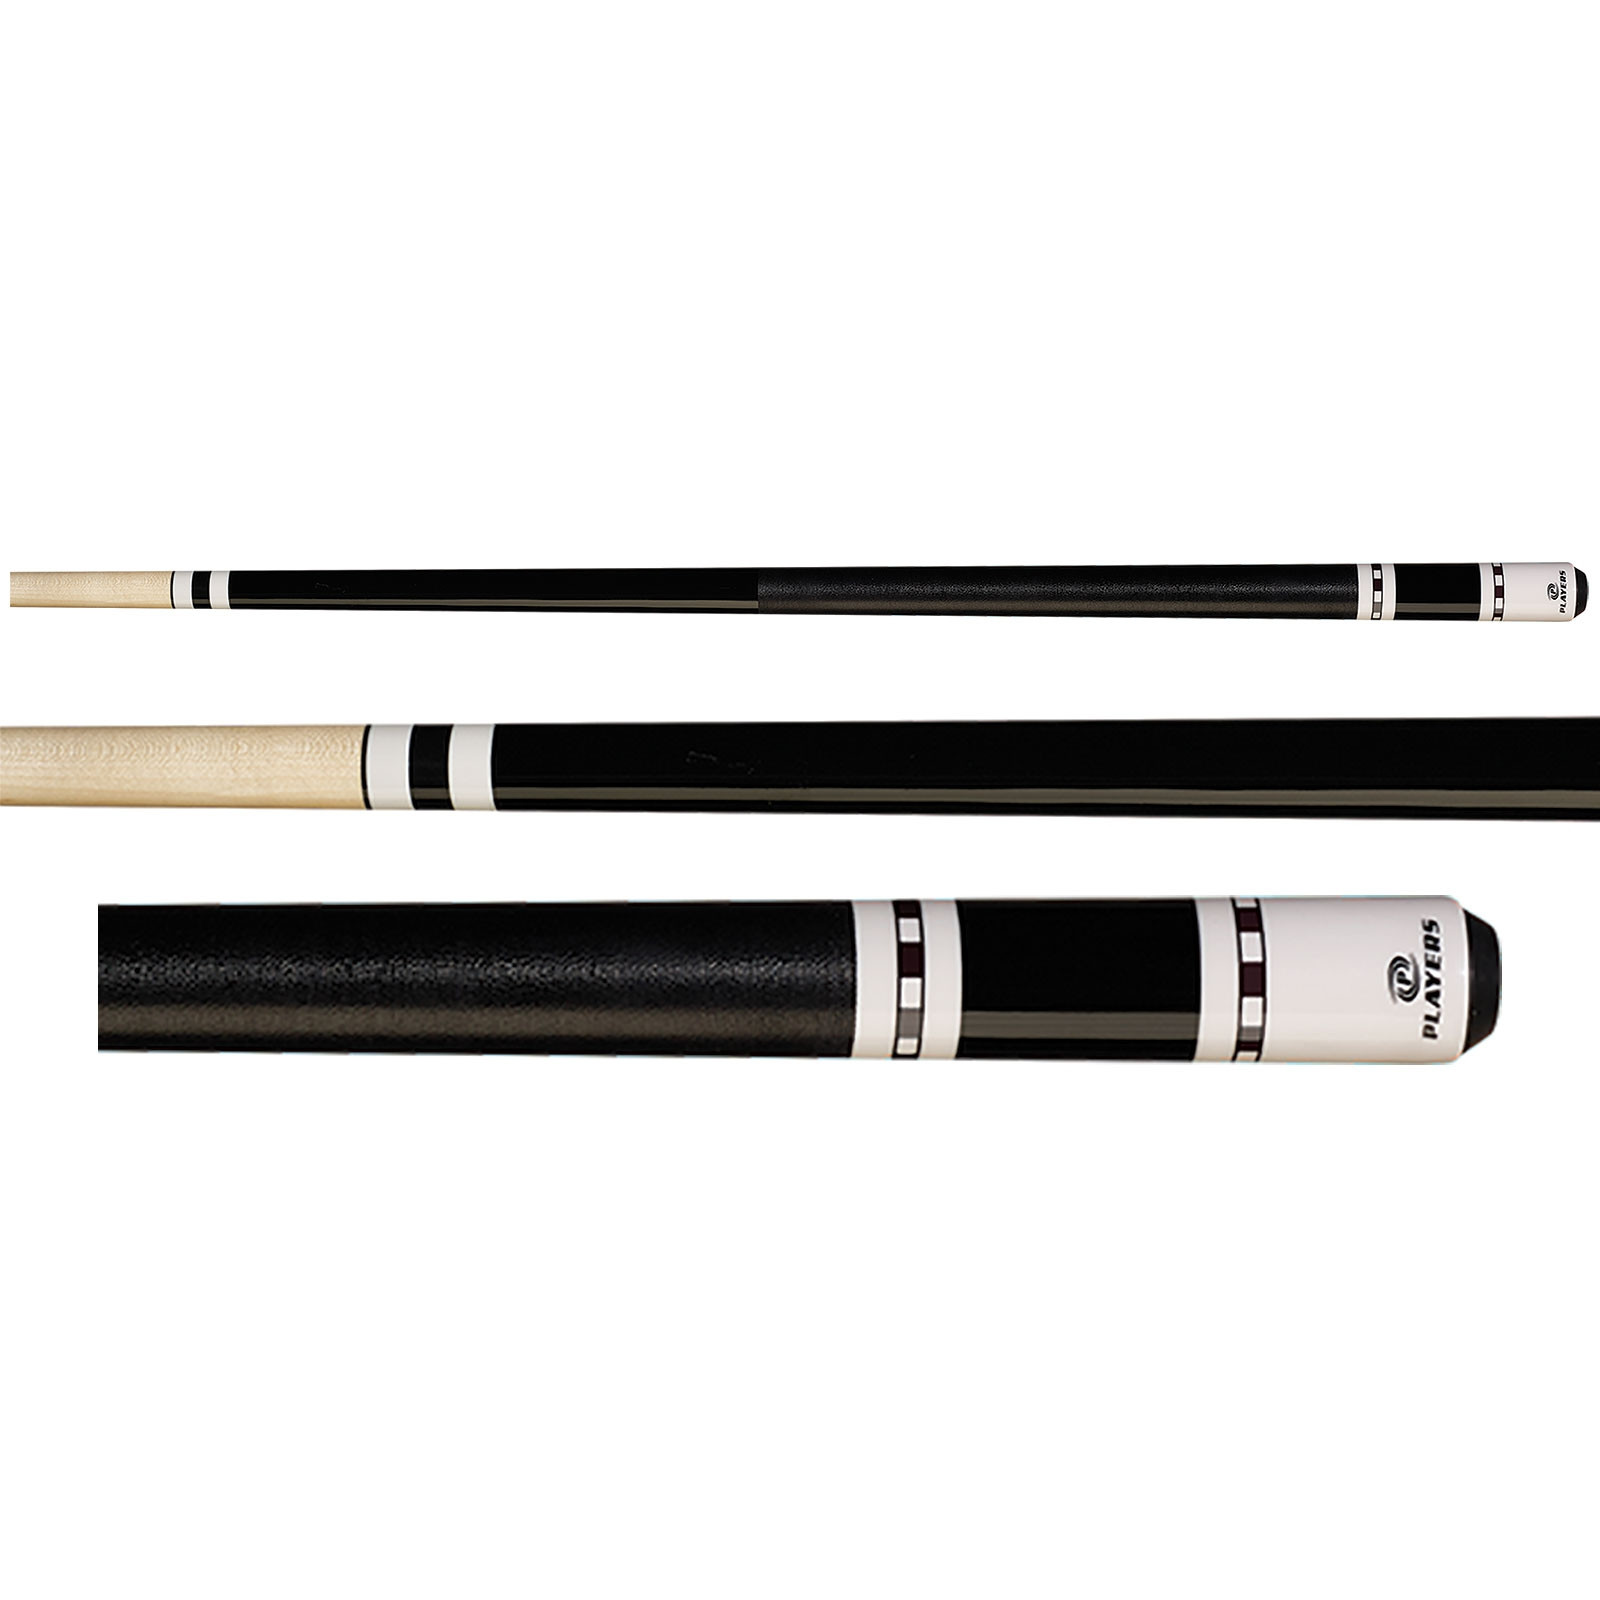 Players C-944 Black Pool Cue